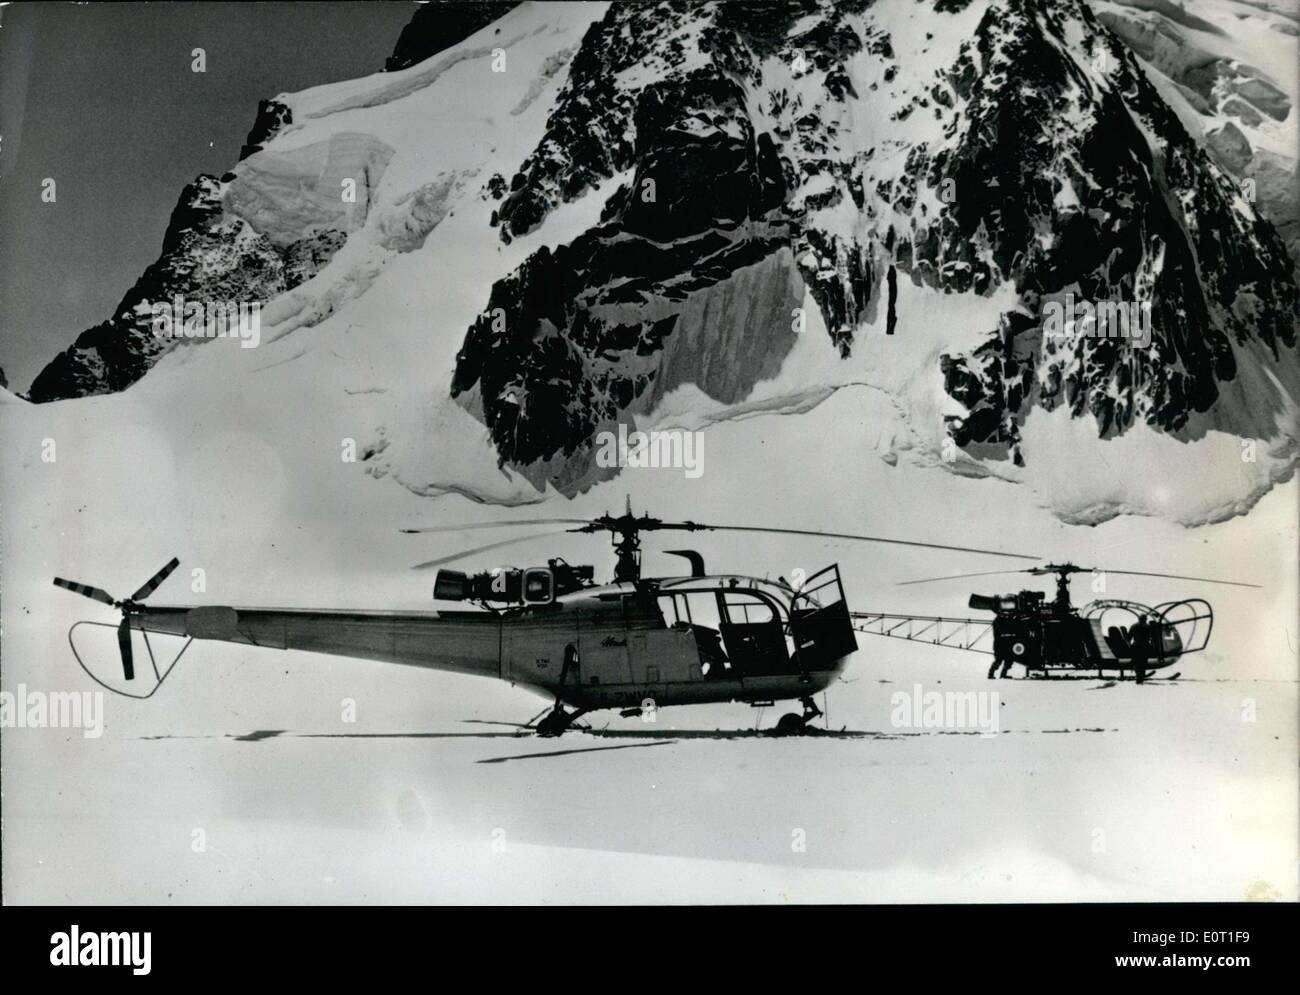 Jun. 29, 1960 - The ''Alouette III'' just completed mountain tests in the massif of Mont-Blanc from the 8th to the 22nd of June. During the tests, different high altitude platforms were used, including the furthest point of Mont-Blanc where several landings were made. These trials allowed them to decide with precision the admissible weight of the equipment for the landings or take off altitudes; it also allowed them to study the performance on the snow of skids specially made to prevent the equipment from sinking all while preventing it from sliding - Stock Image